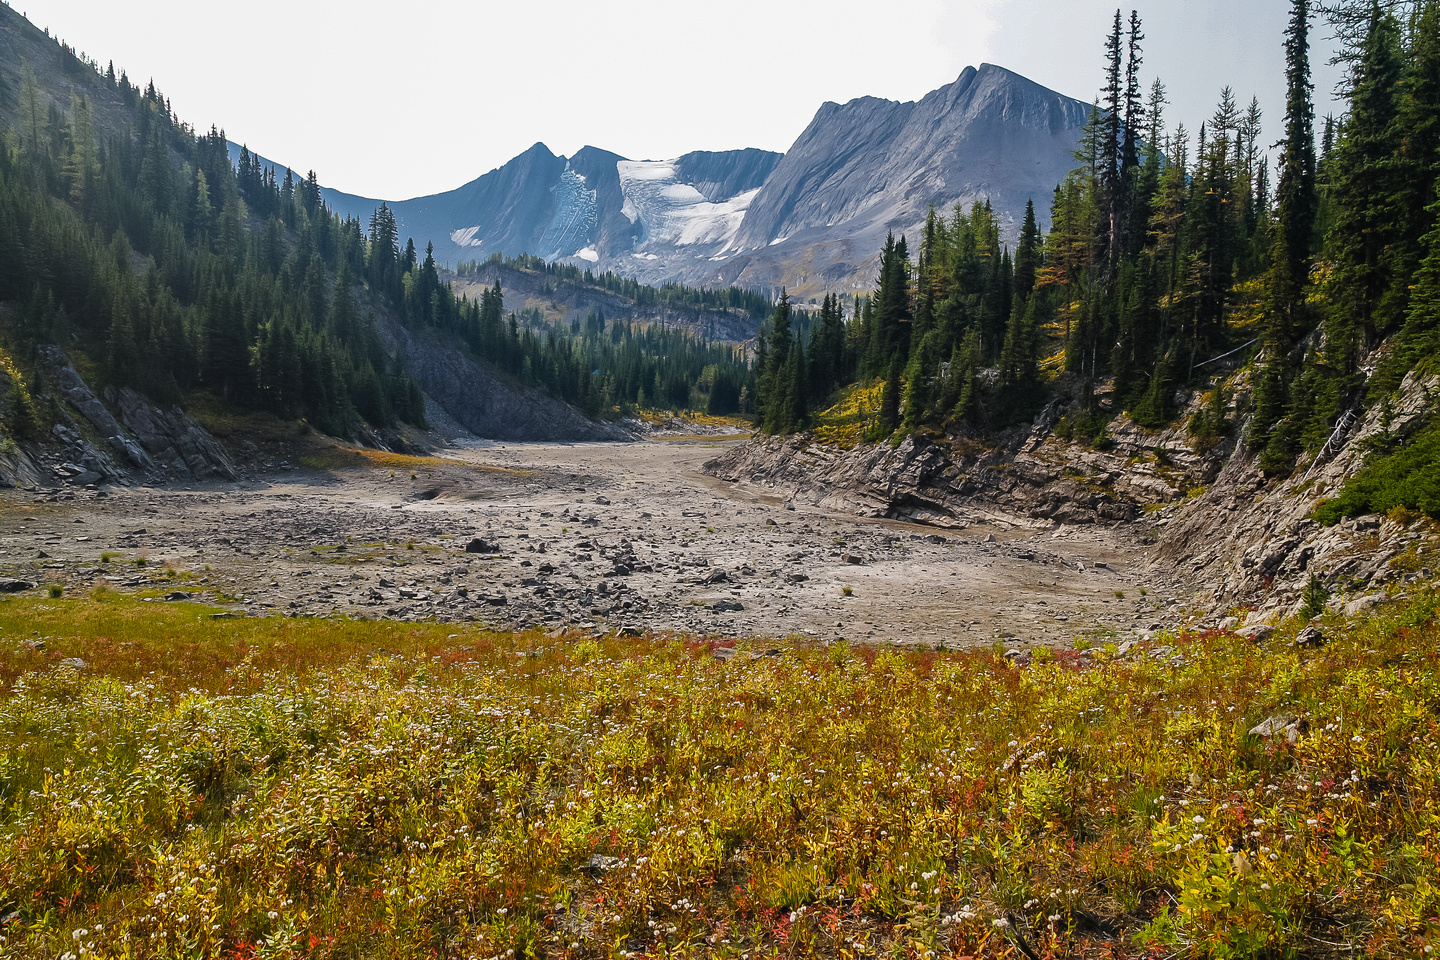 We dropped our backpacks near this dried up tarn before turning left (east) up the west ridge scramble route on Sarrail.